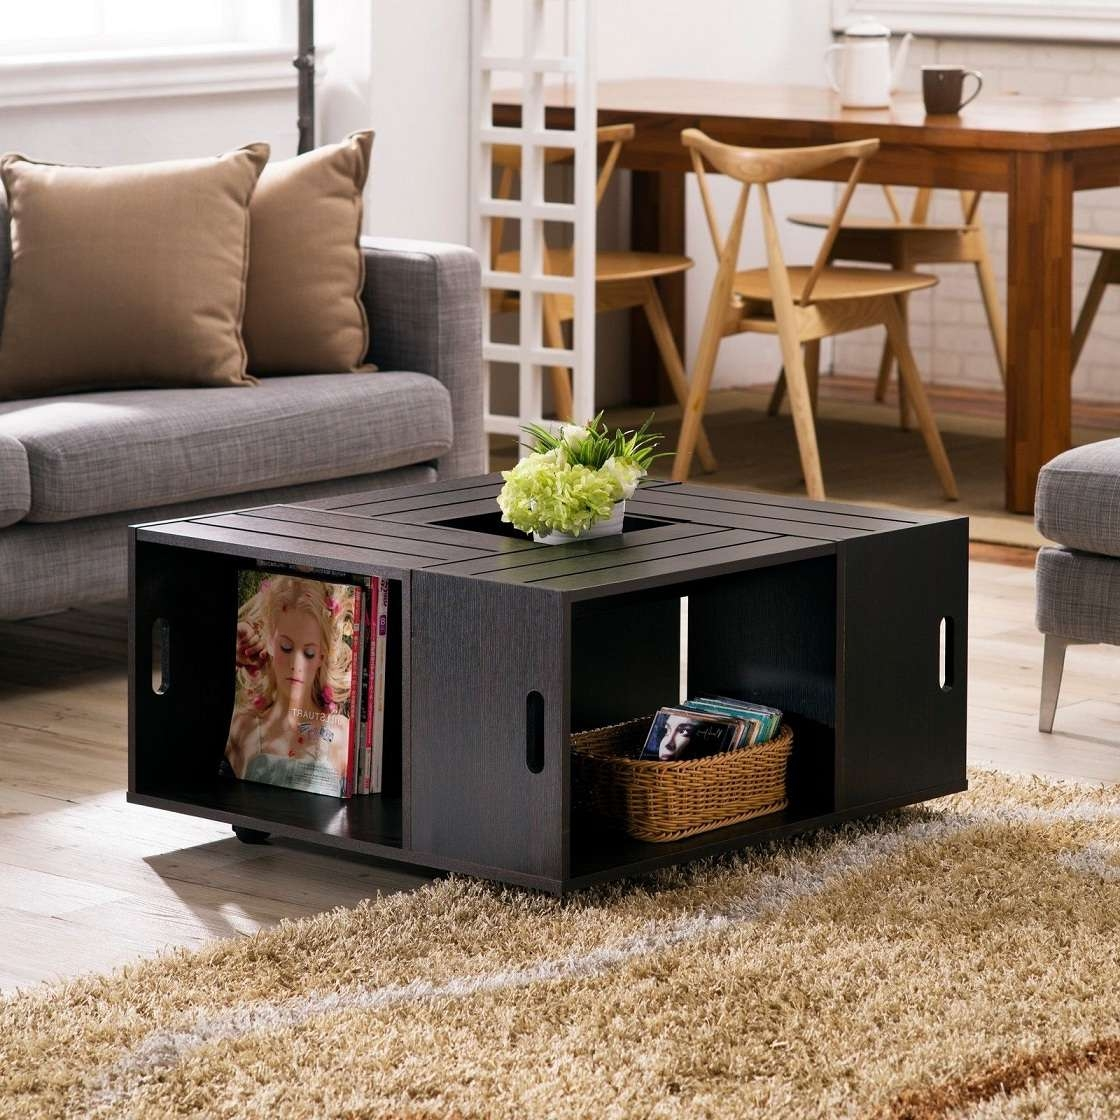 Low Coffee Table With Storage 20 Best Small Coffee Tables With Storage